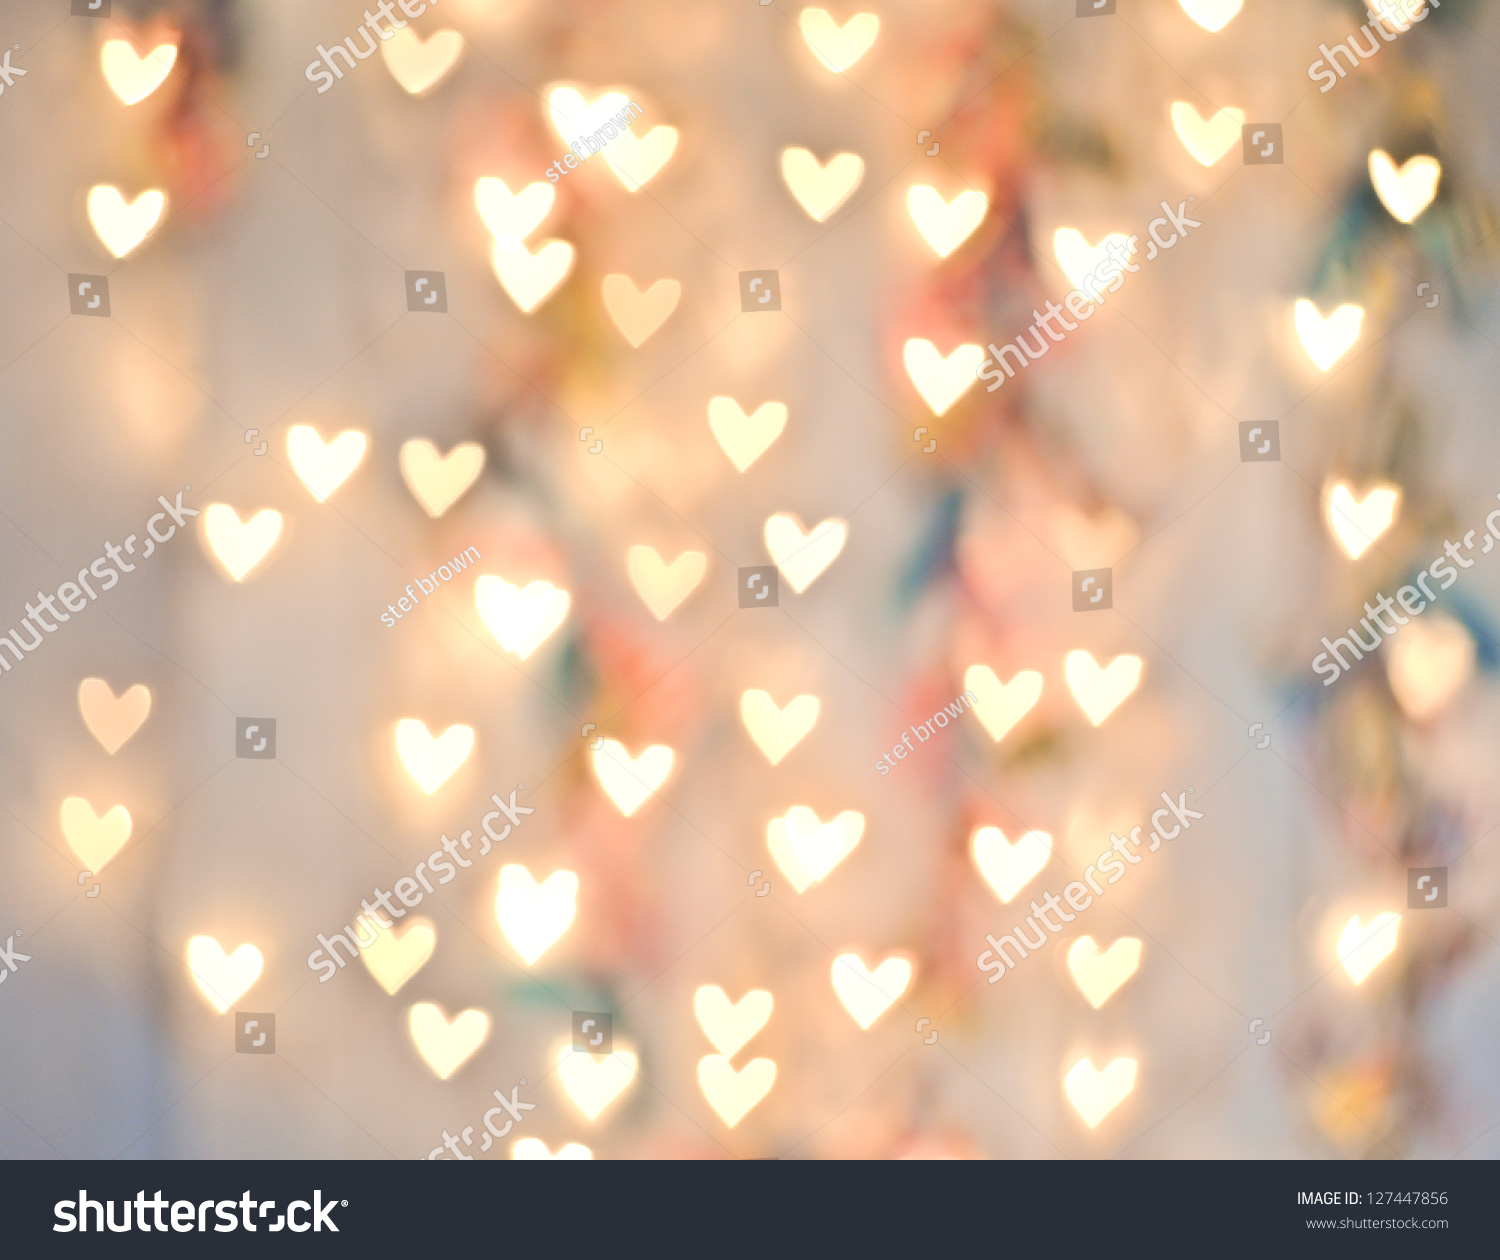 Pastel Heart Bokeh On Pale Background Stock Photo ...